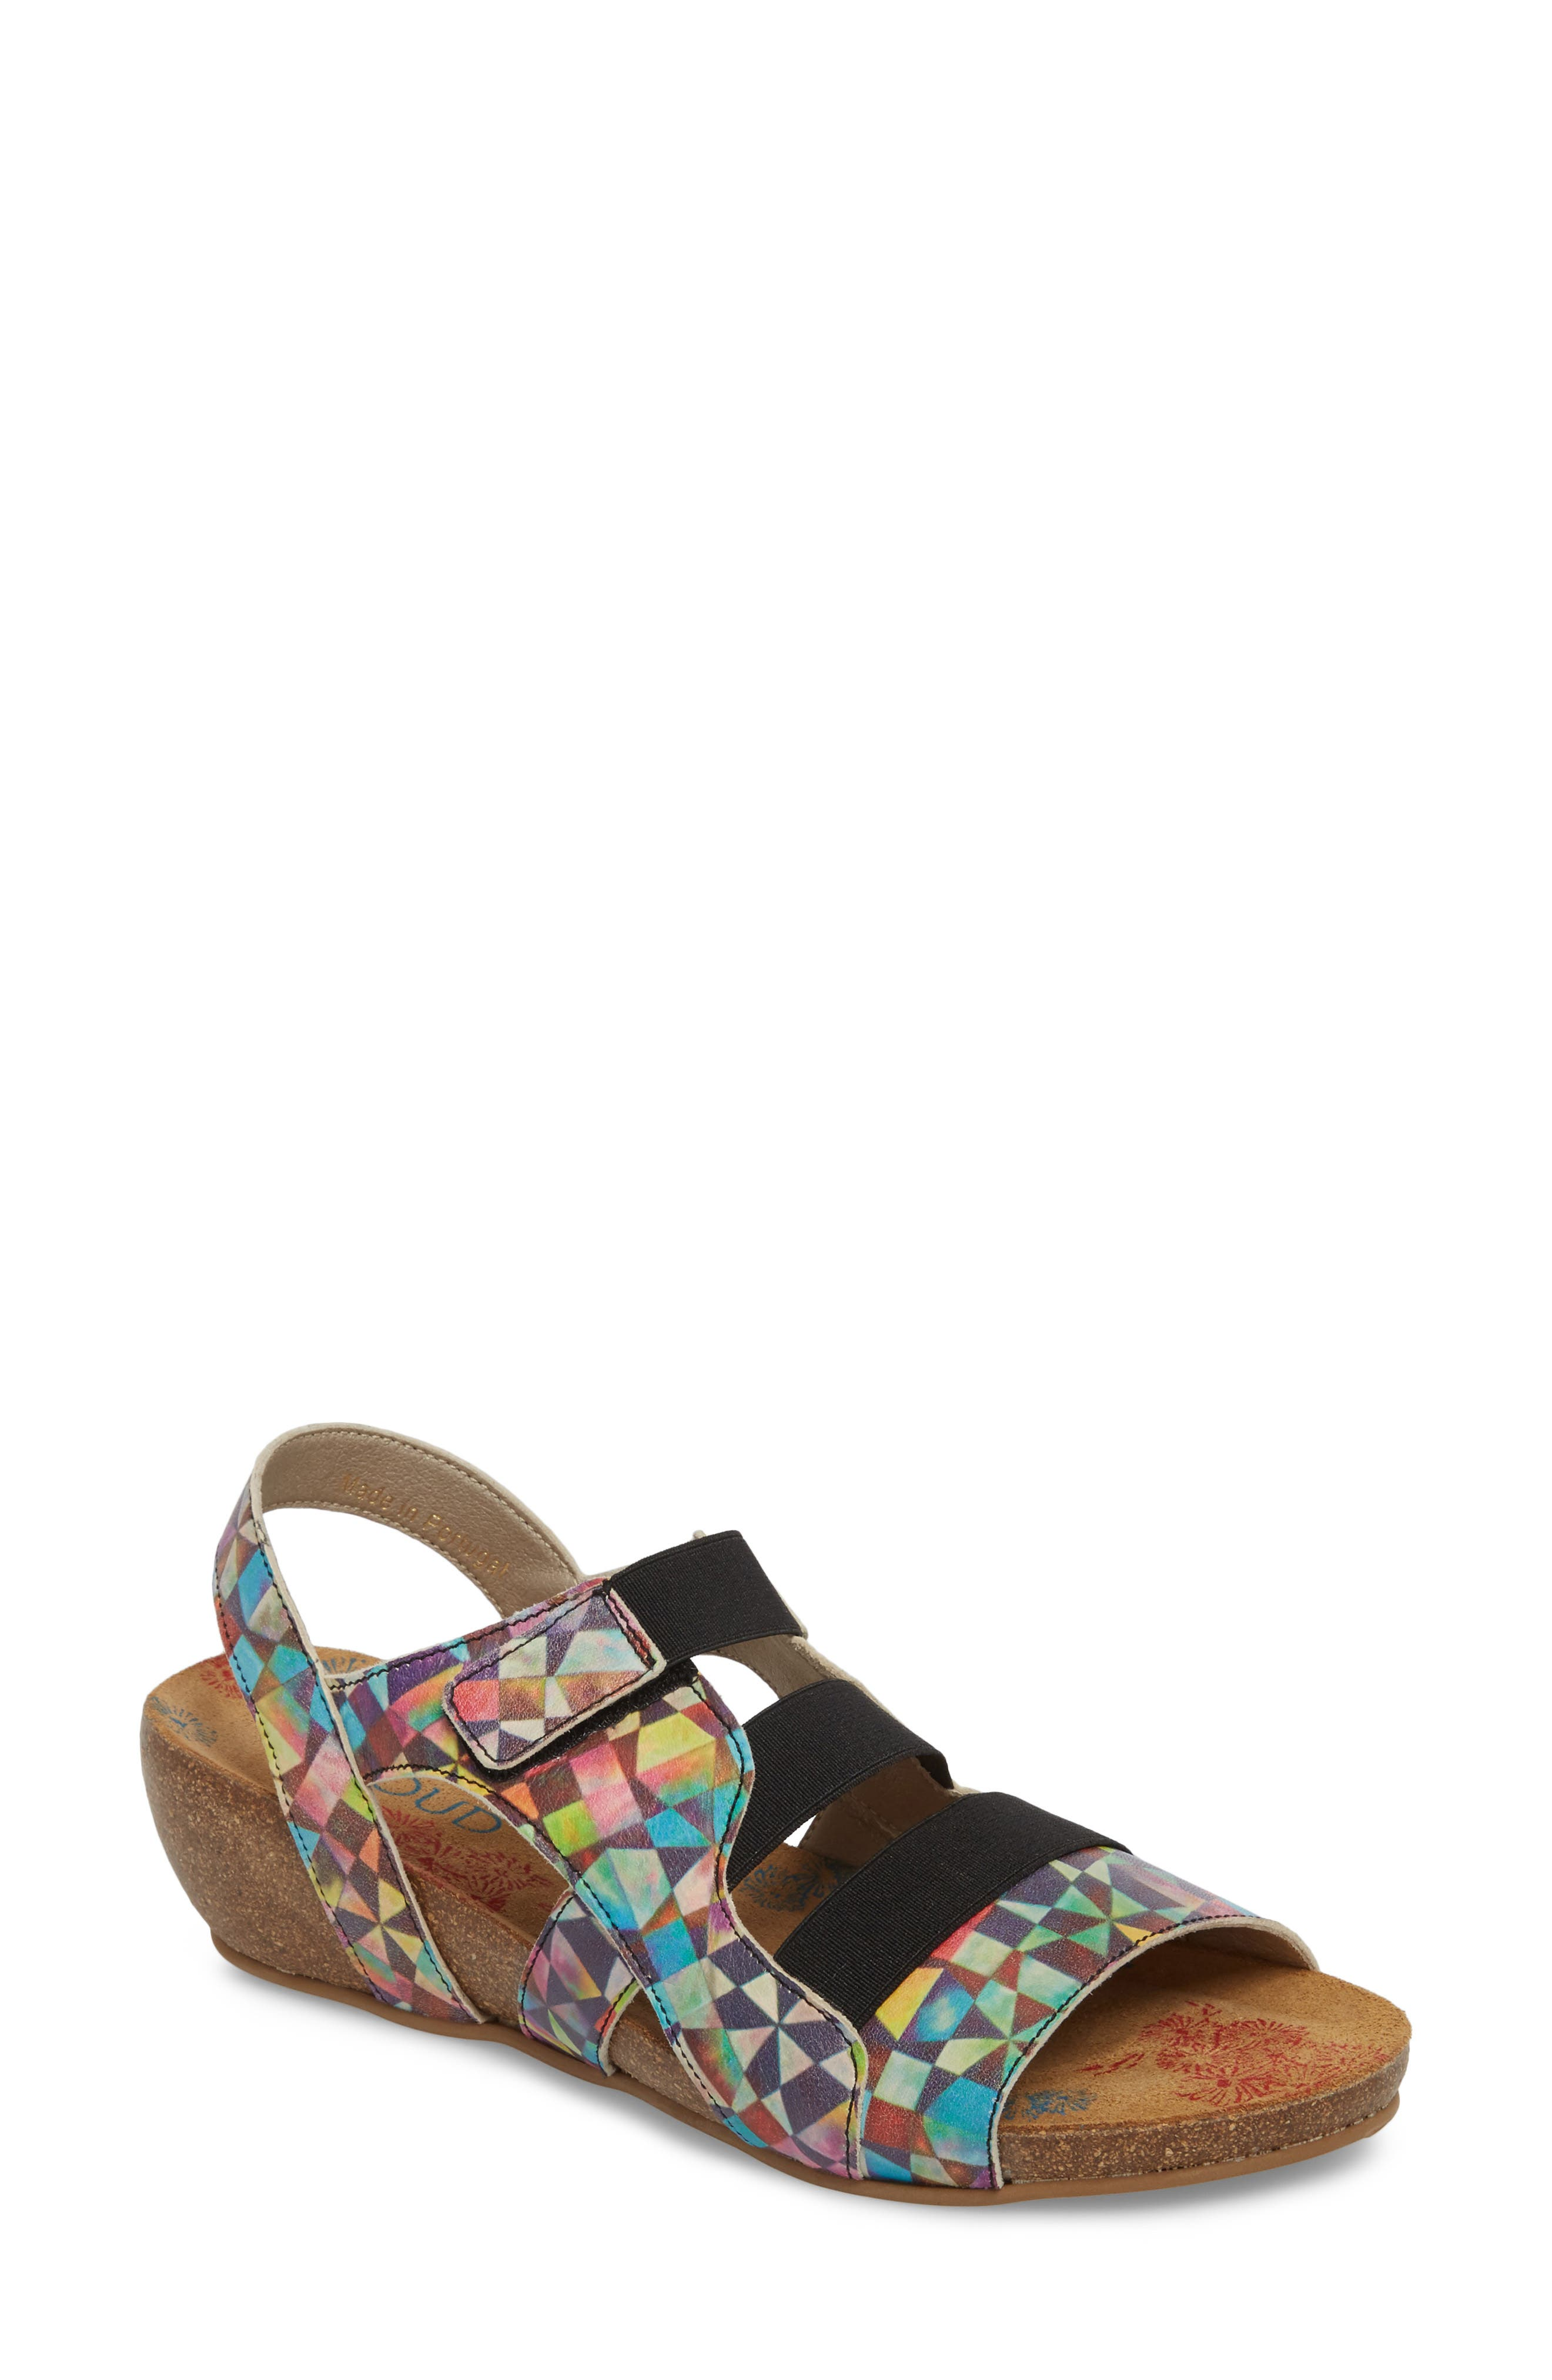 Duffy Wedge Sandal,                         Main,                         color, Mystere Leather